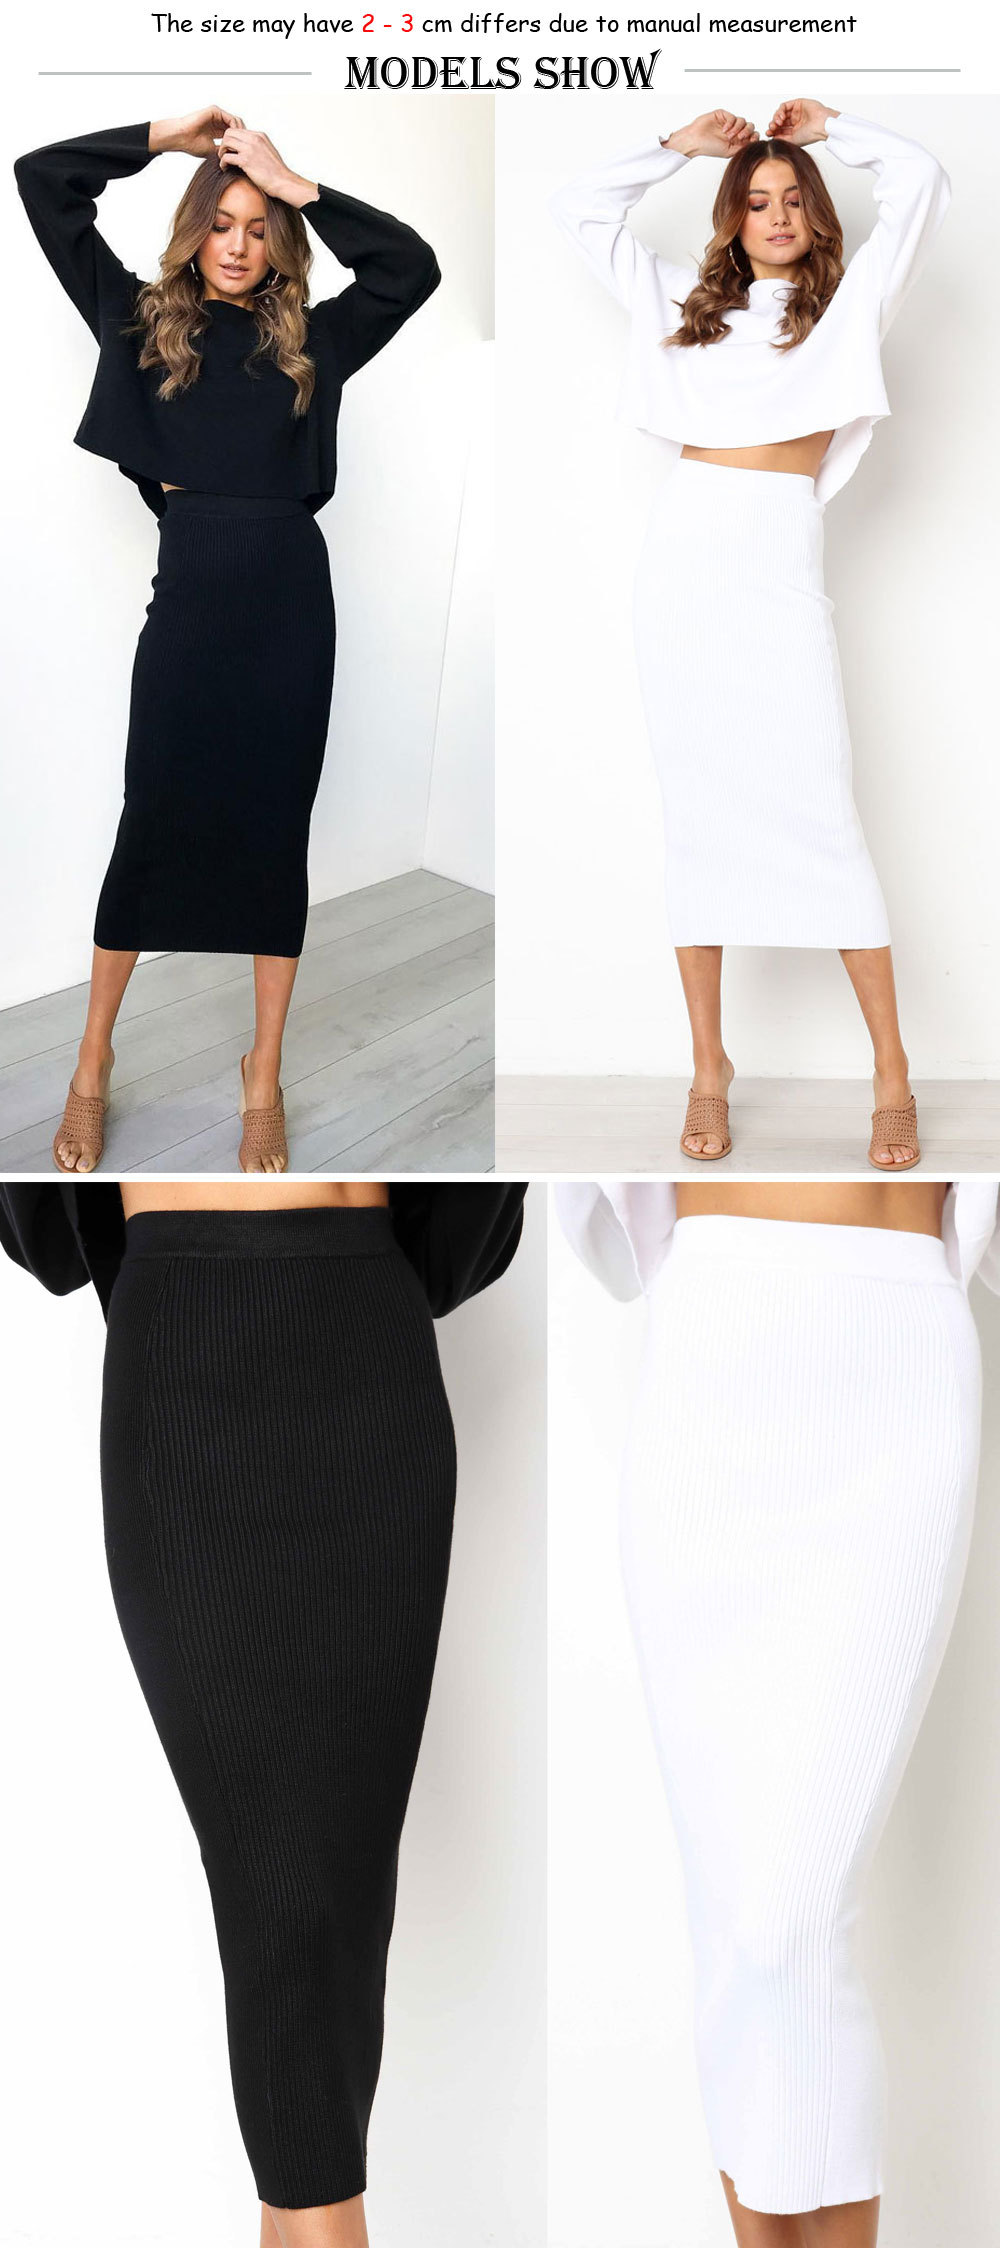 HTB1wMxHmGAoBKNjSZSyq6yHAVXaN - LOSSKY Knitted Autumn Bodycon Long Skirt Sexy Black White High Waist Tight Women Maxi Elegant Party Club Wear Pencil Skirts